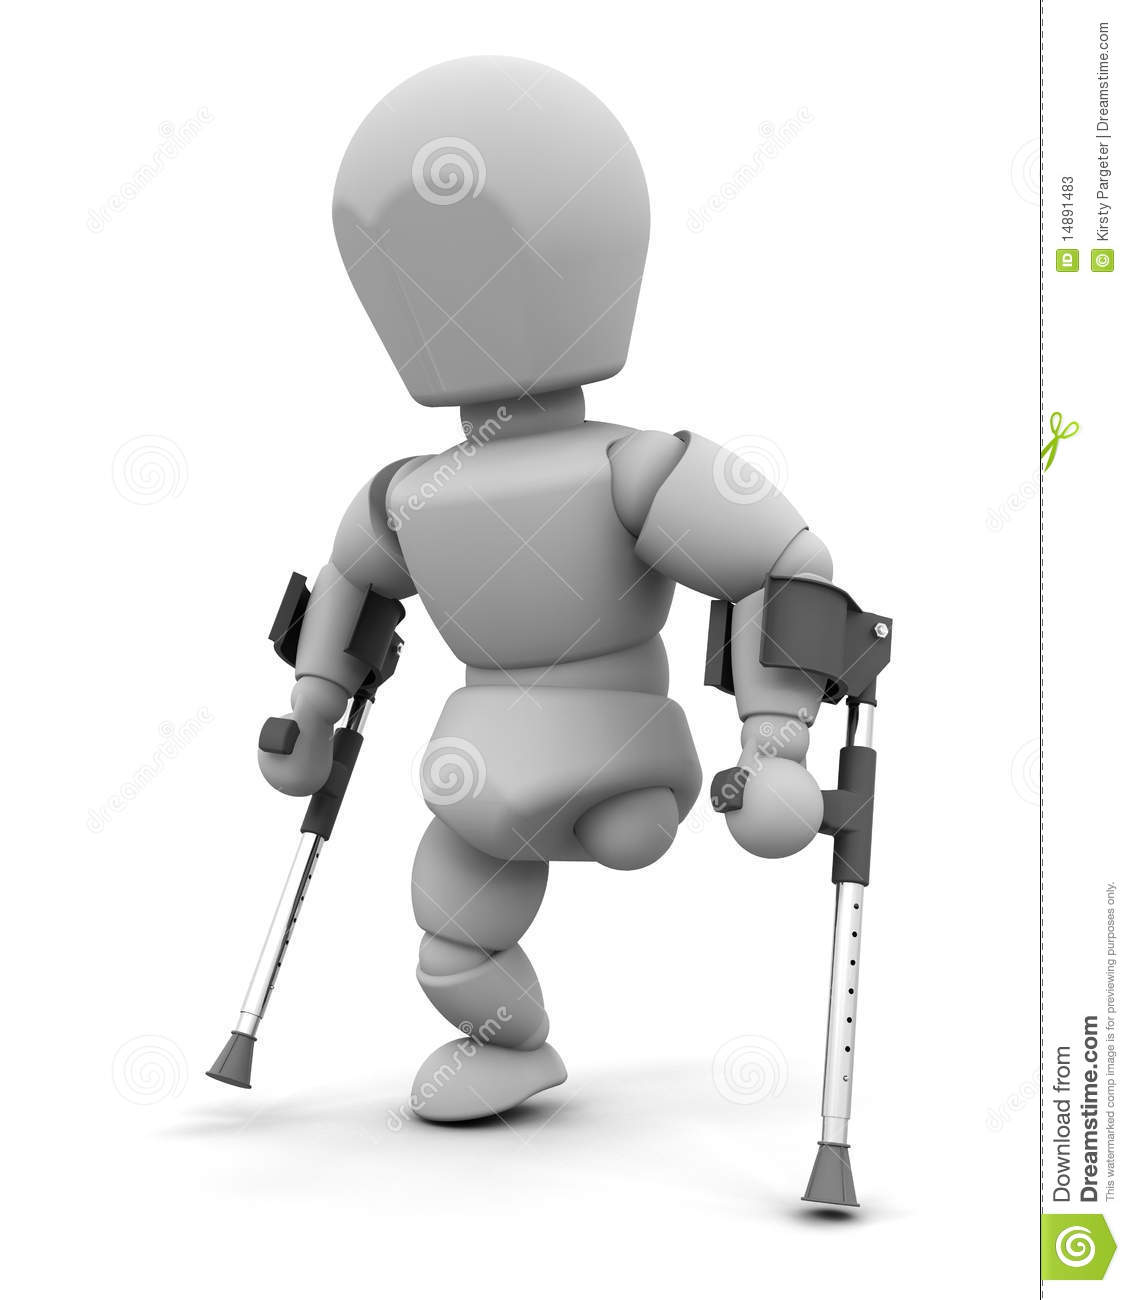 Amputee on crutches